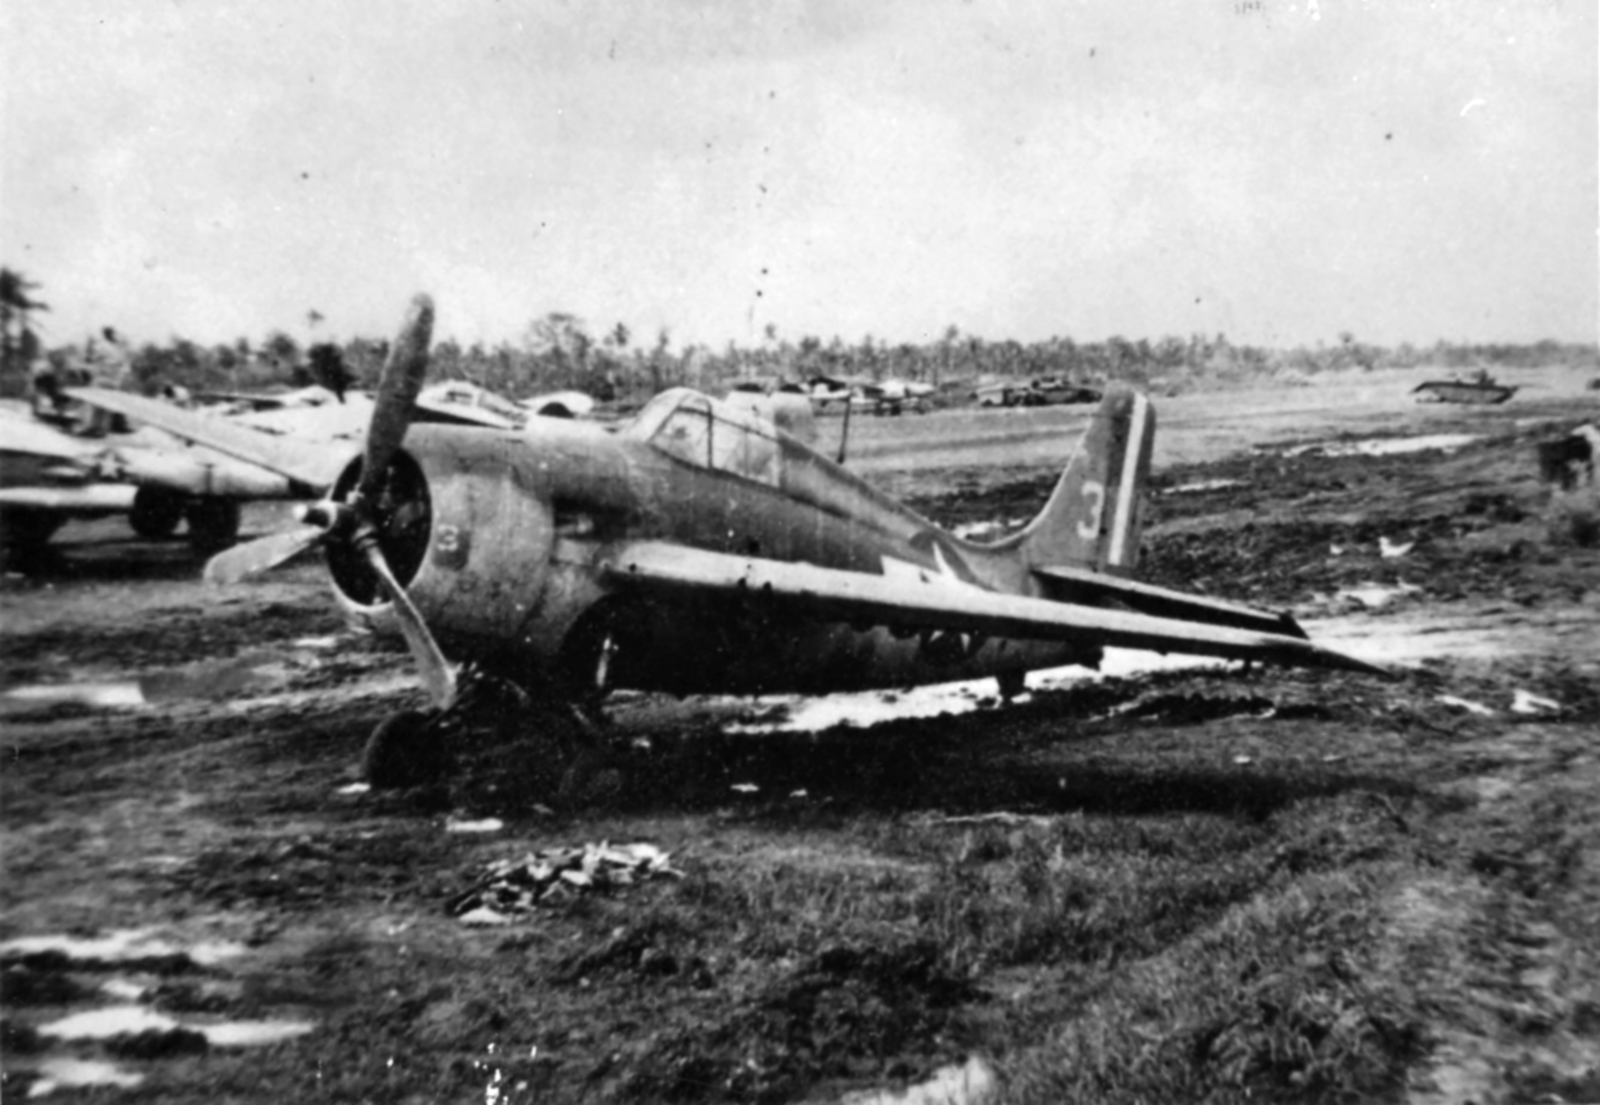 FM 2 Wildcat VC 65 White 3 bogged in mud from CVE 63 USS St Lo 01